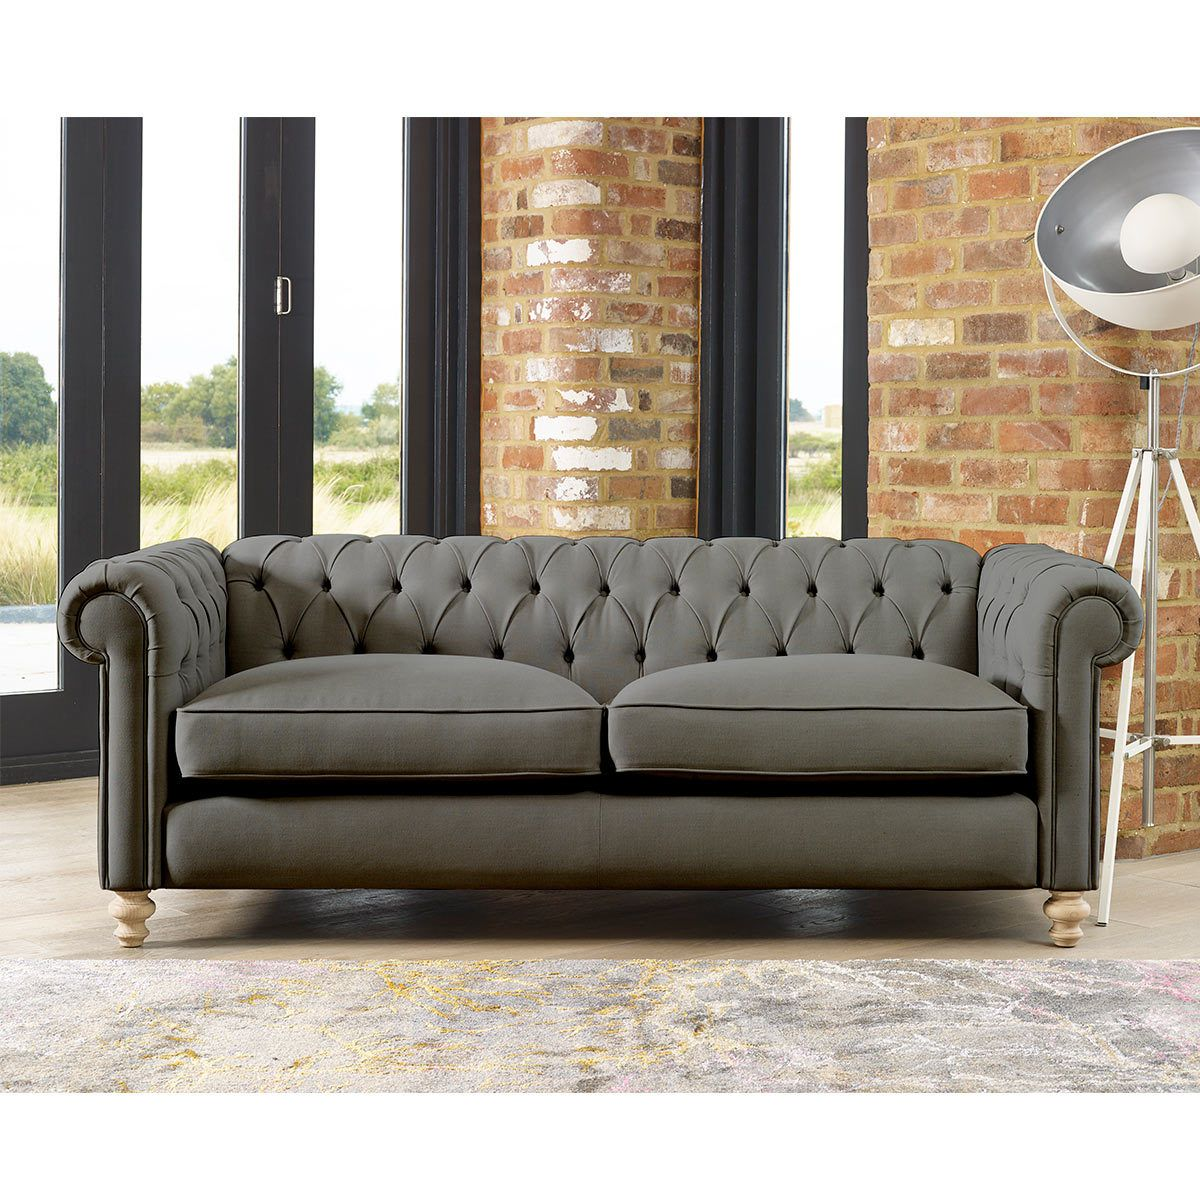 Chesterfield 4 Seater Sofa, Smoke in 2019 | new home | Sofa, Classic ...